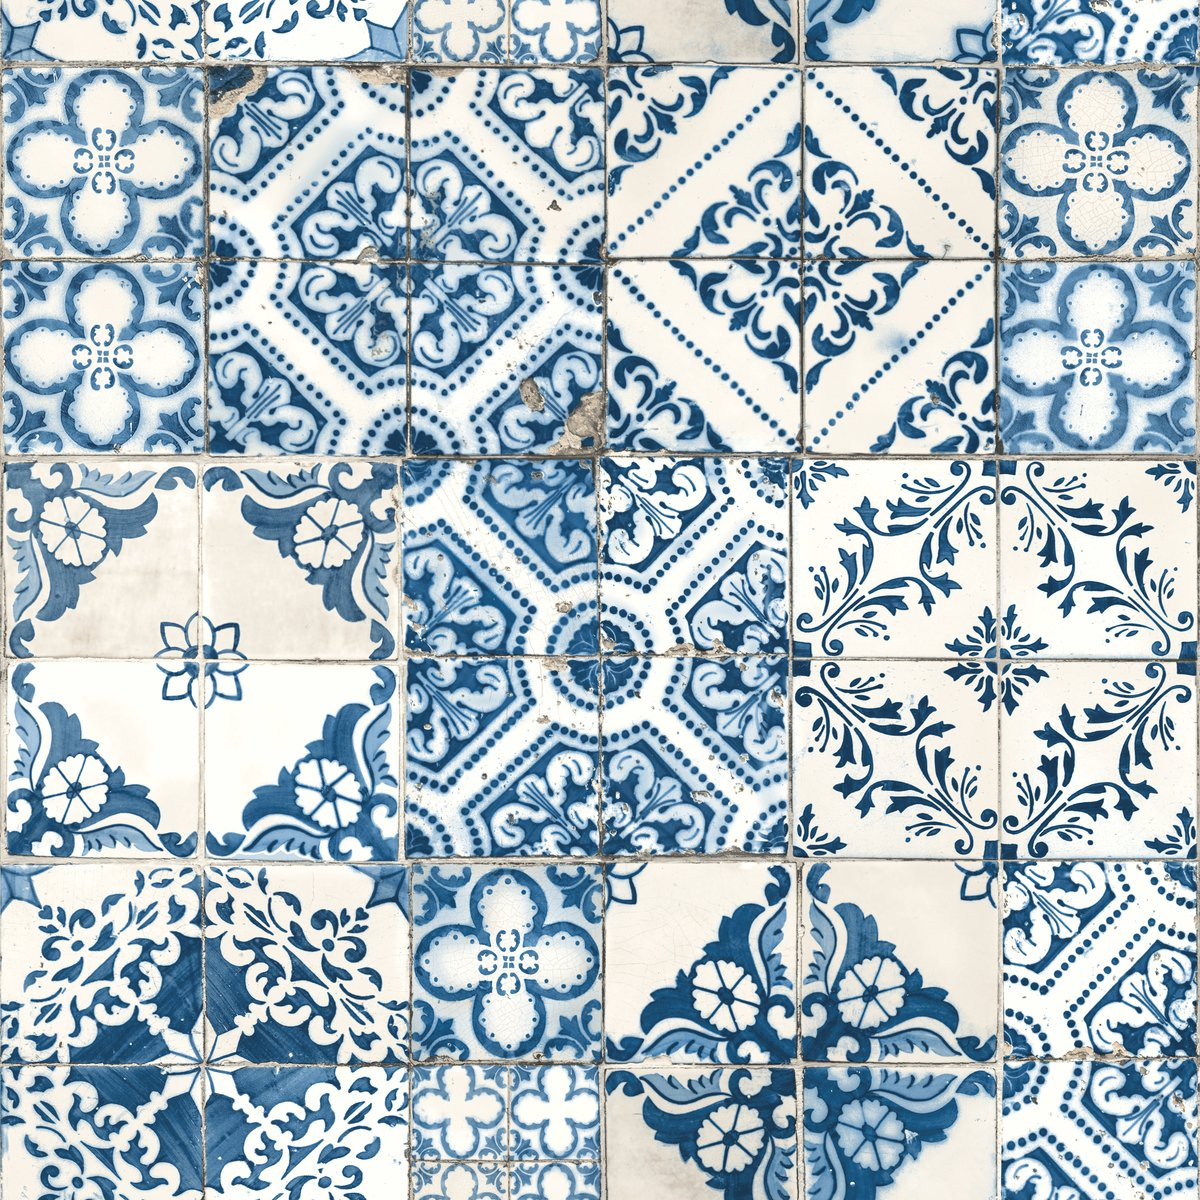 RoomMates Mediterranian Tile Peel and Stick Wallpaper, 20.5'' x 16.5 feet, Blue - RMK11083WP by RoomMates